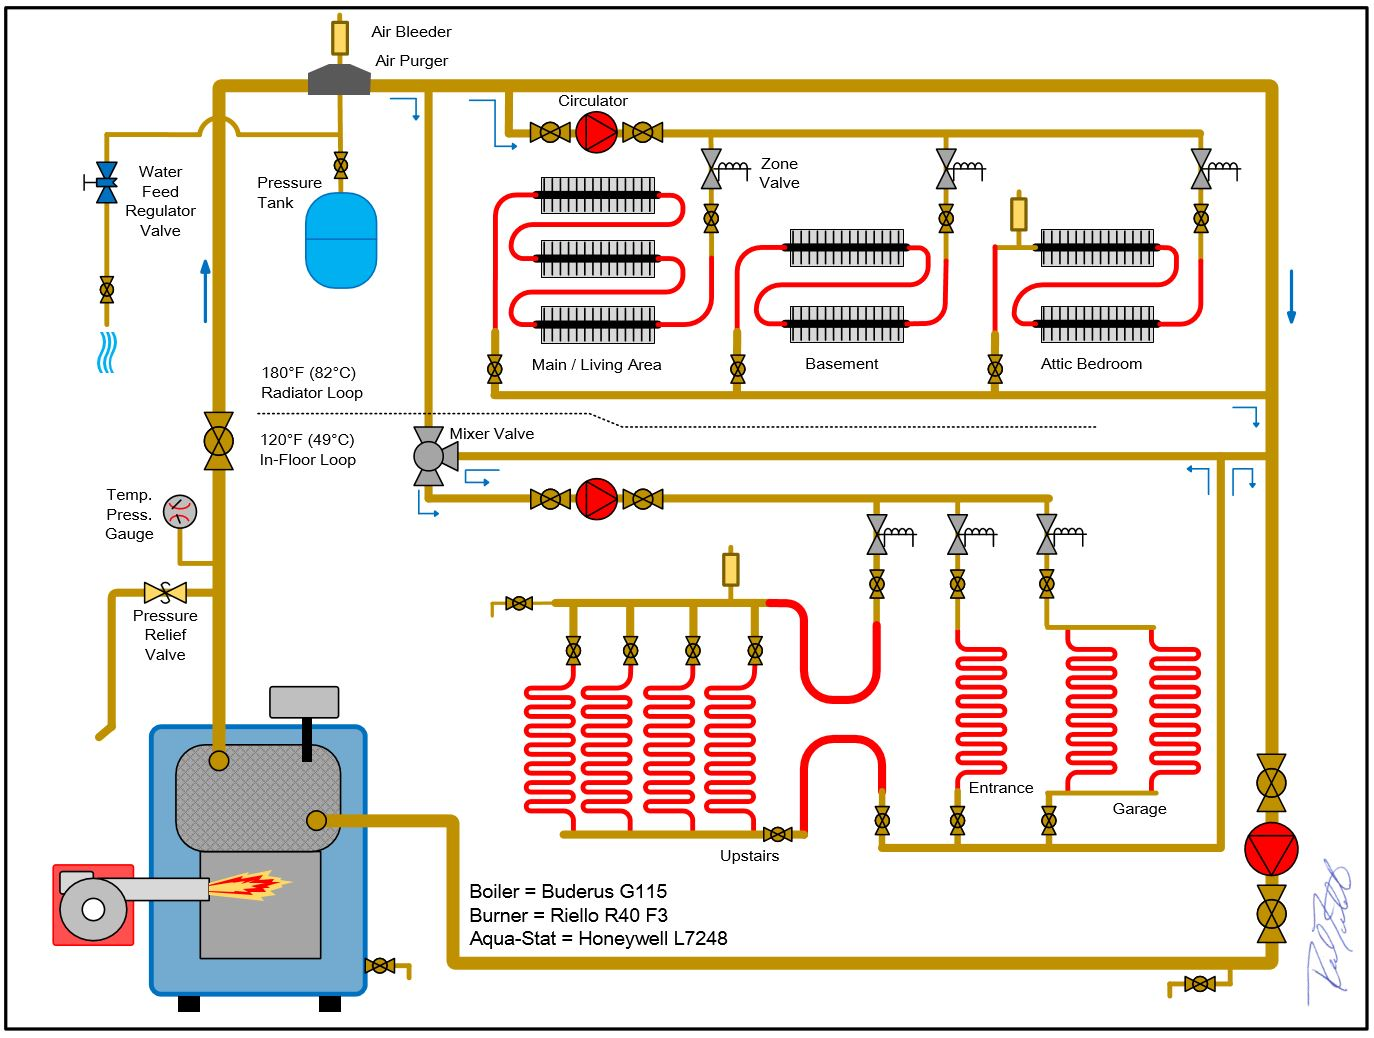 4 Way Mixing Valve Piping Diagram Wiring Diagram With